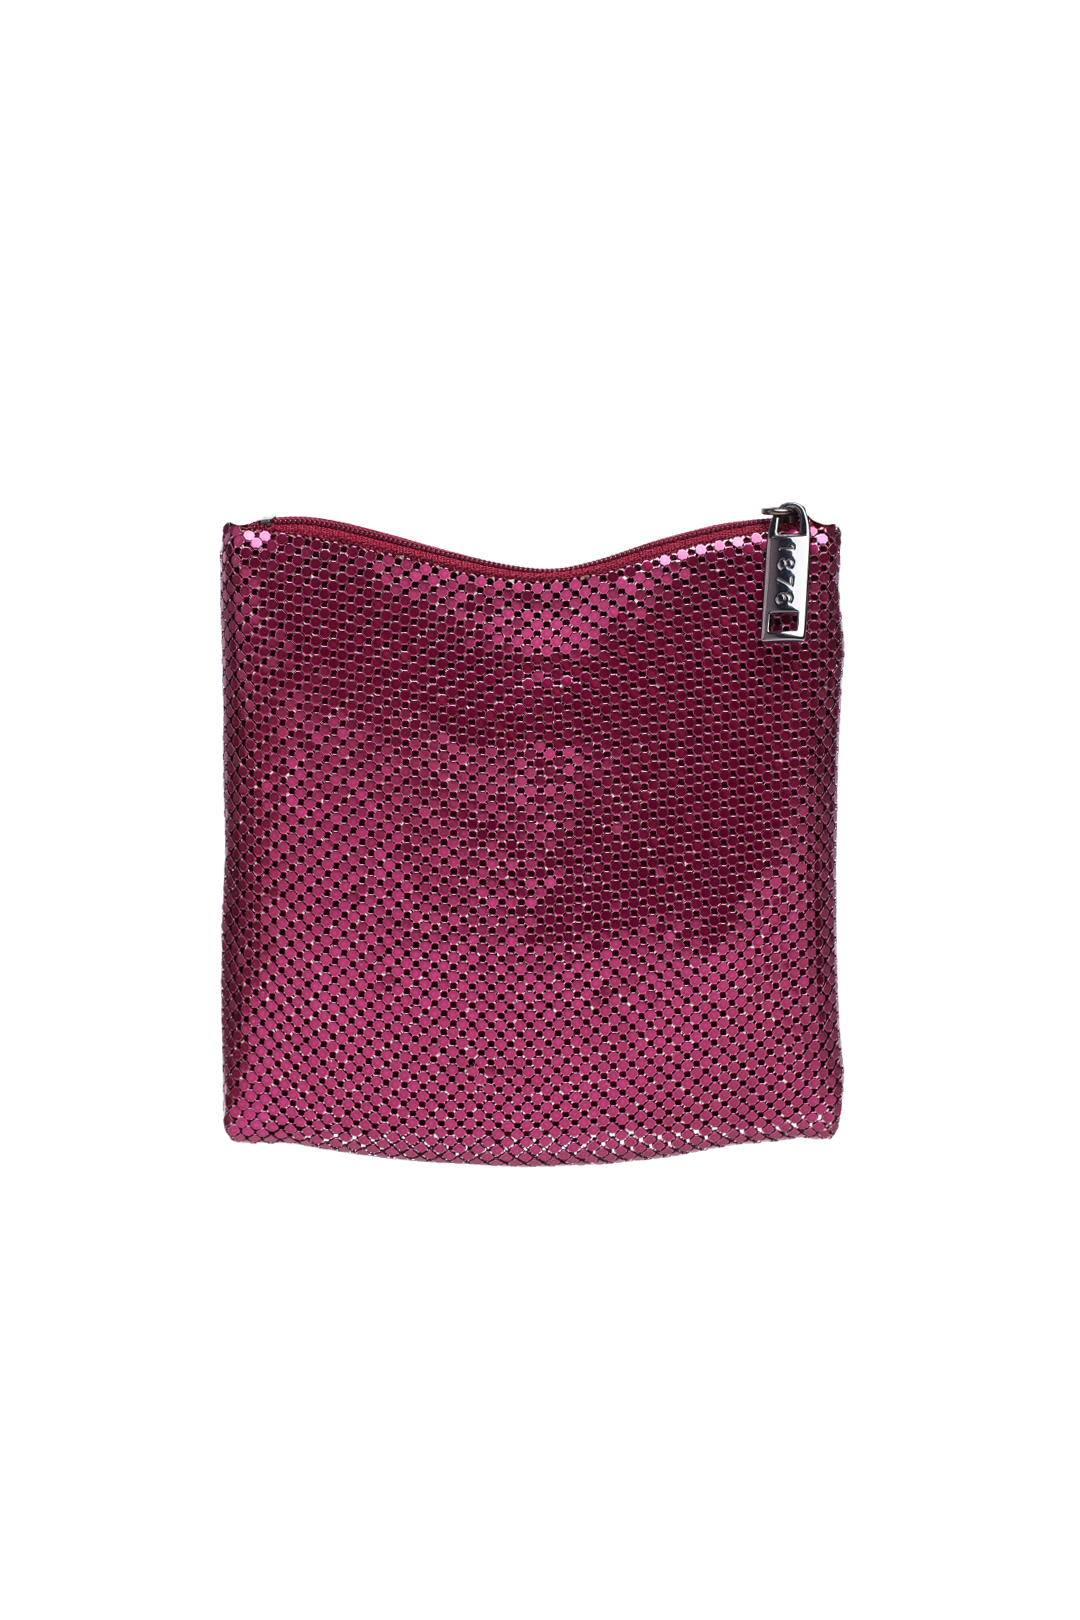 Magneta Dance Bag